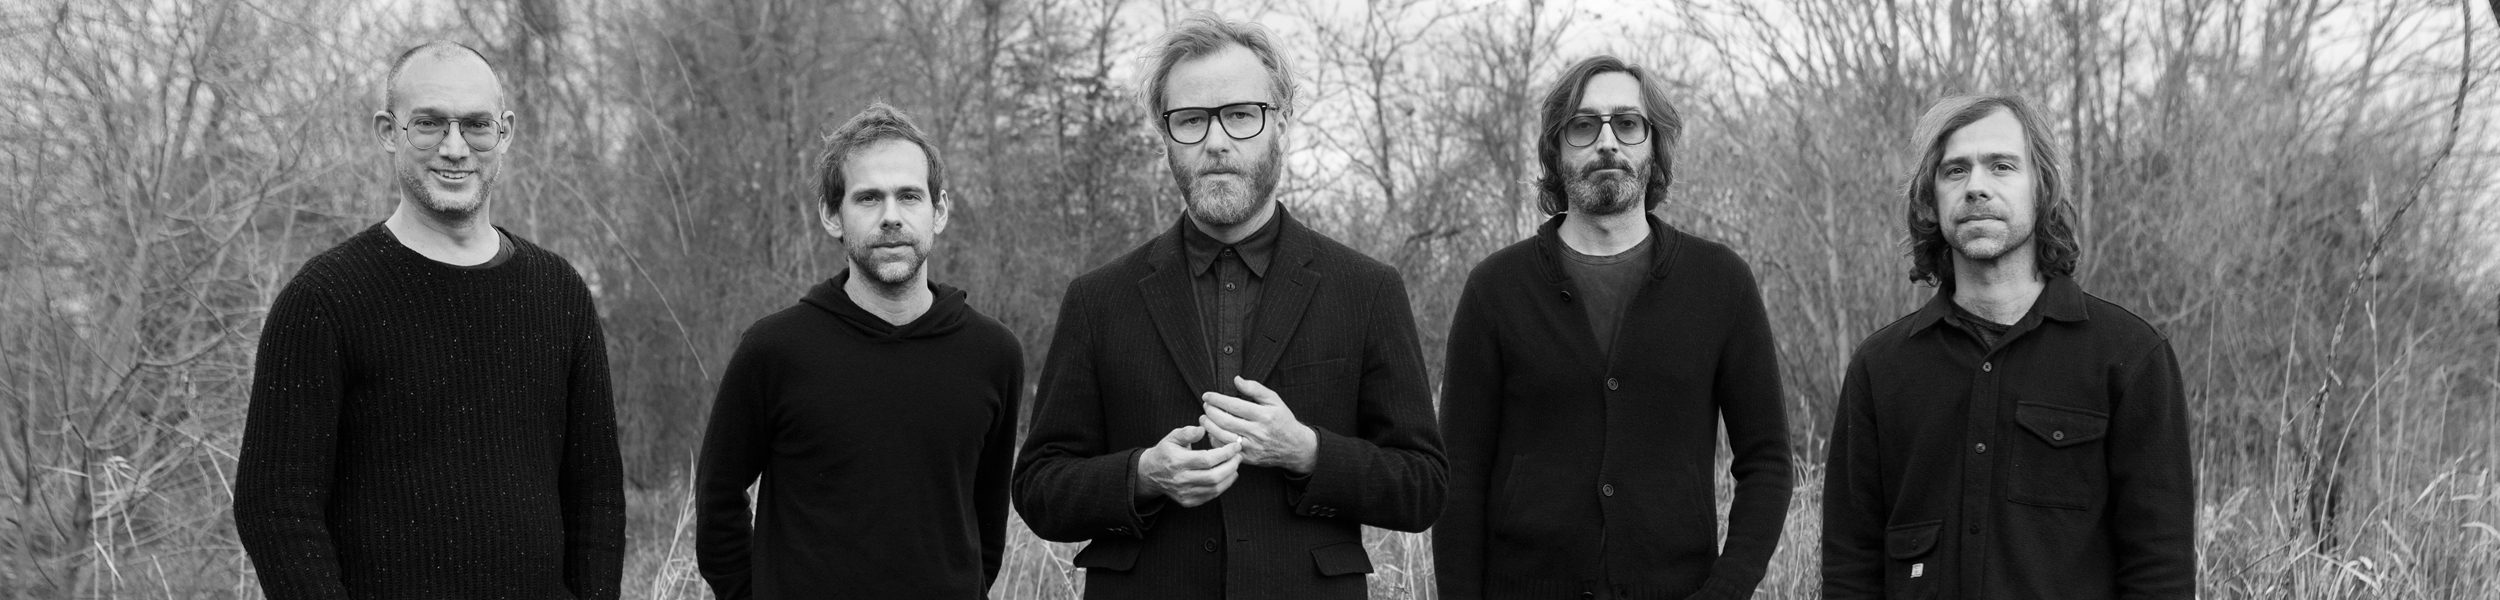 The National - The National's 'High Violet' released this week